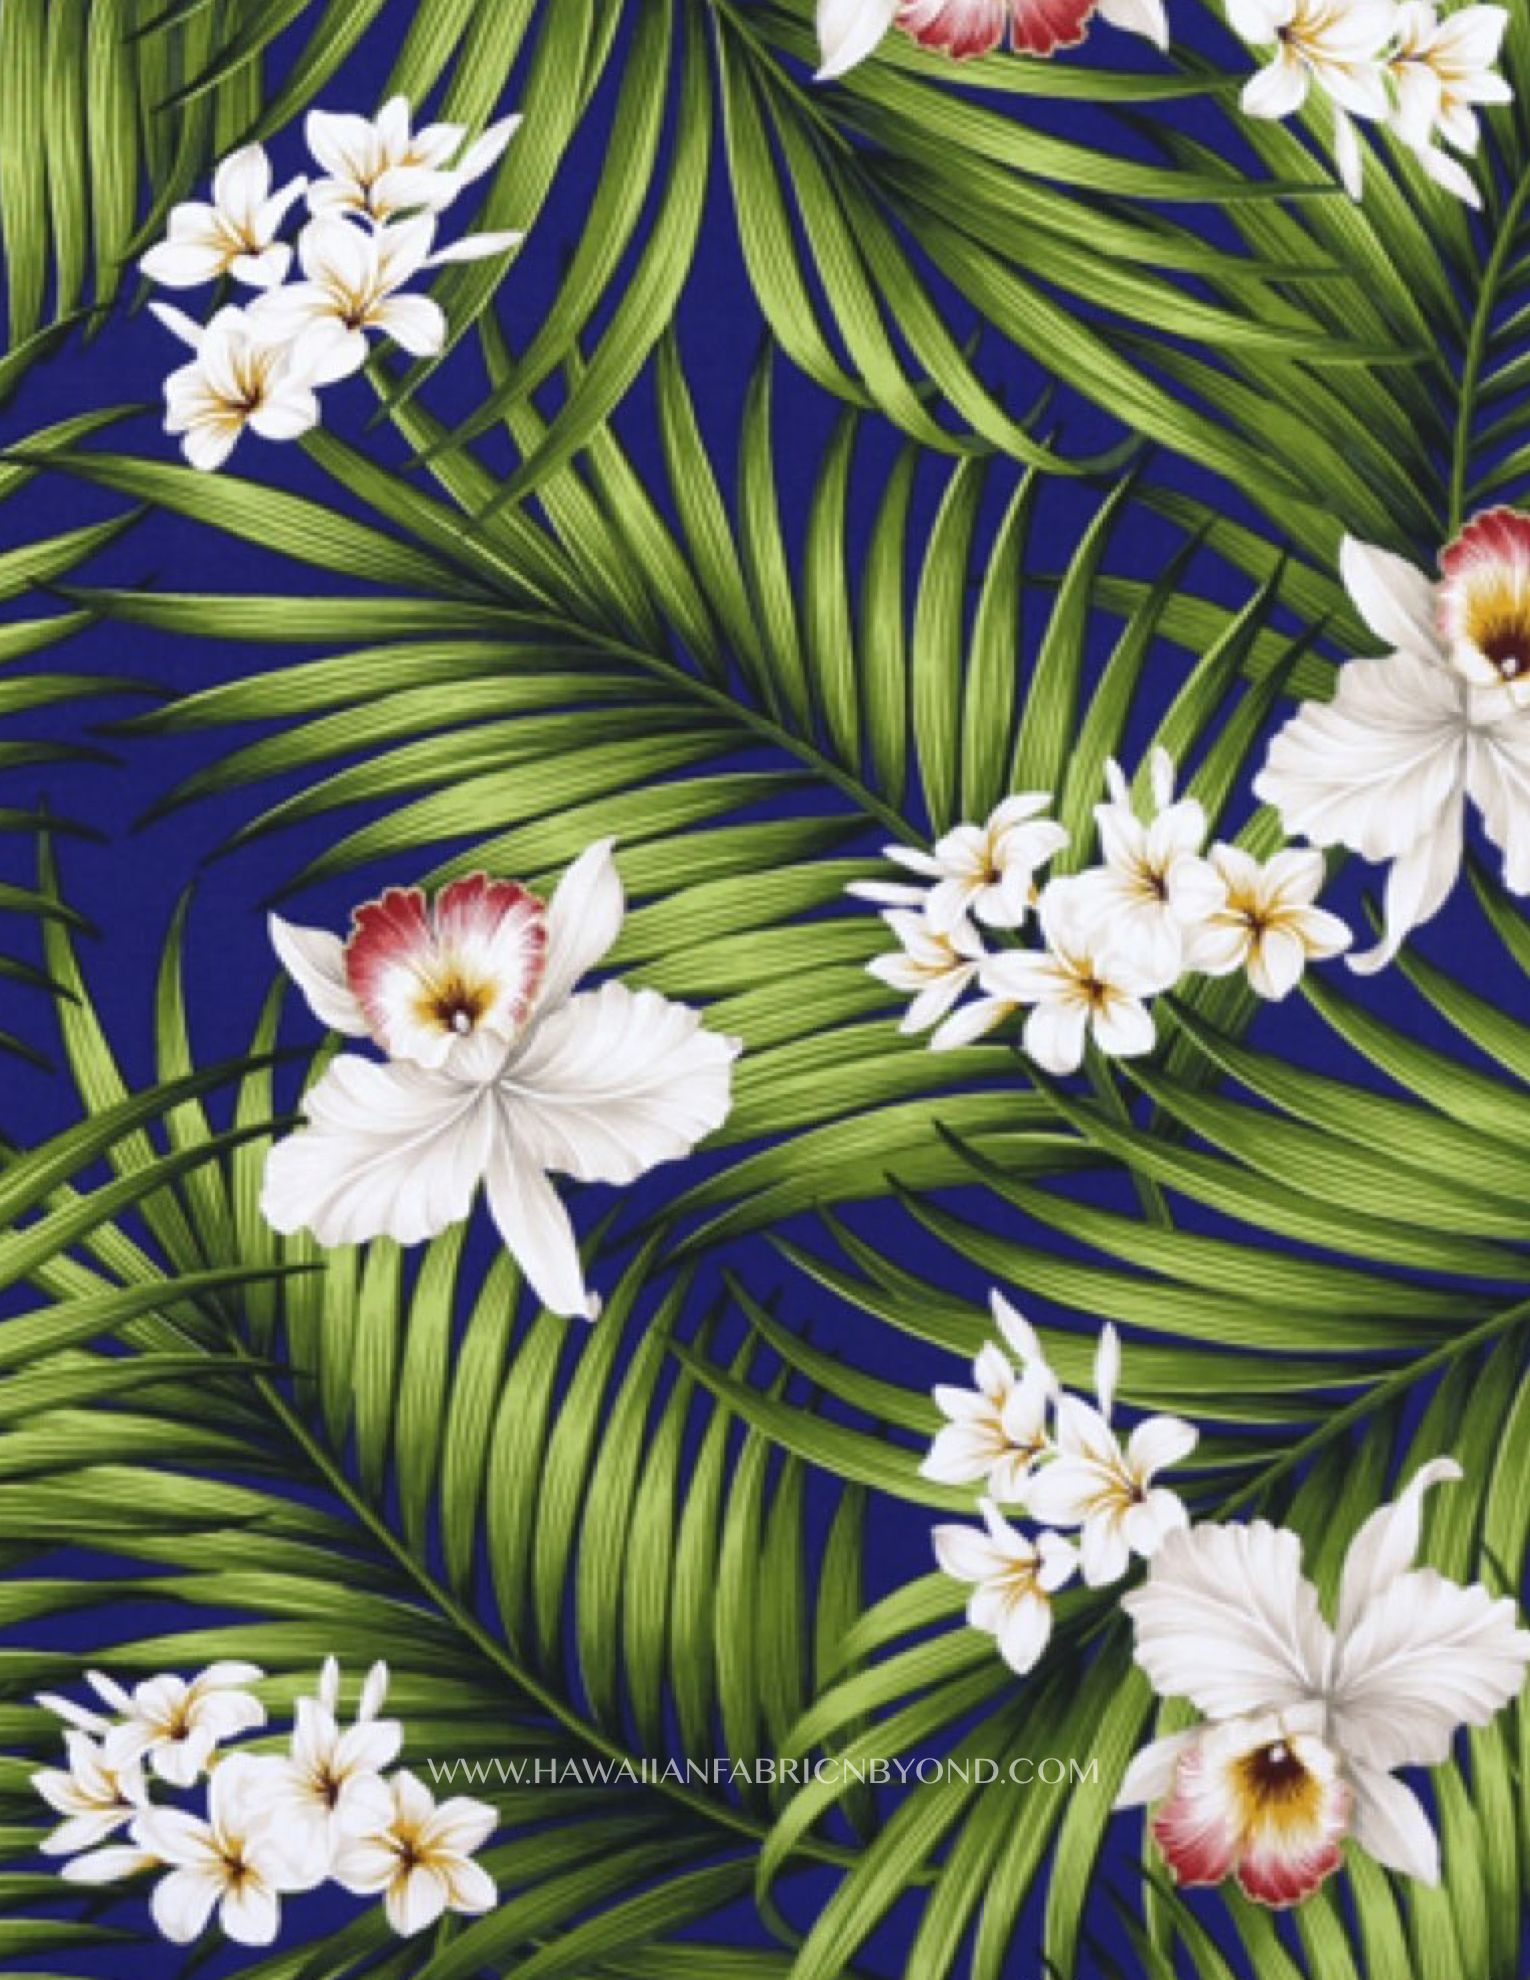 1d24357d30 Rayon Hawaiian fabric #Hawaii #rayon #fabric #palms #orchidflower #tissu  #stoff #tropical #orchids #etsyfinds #sewing